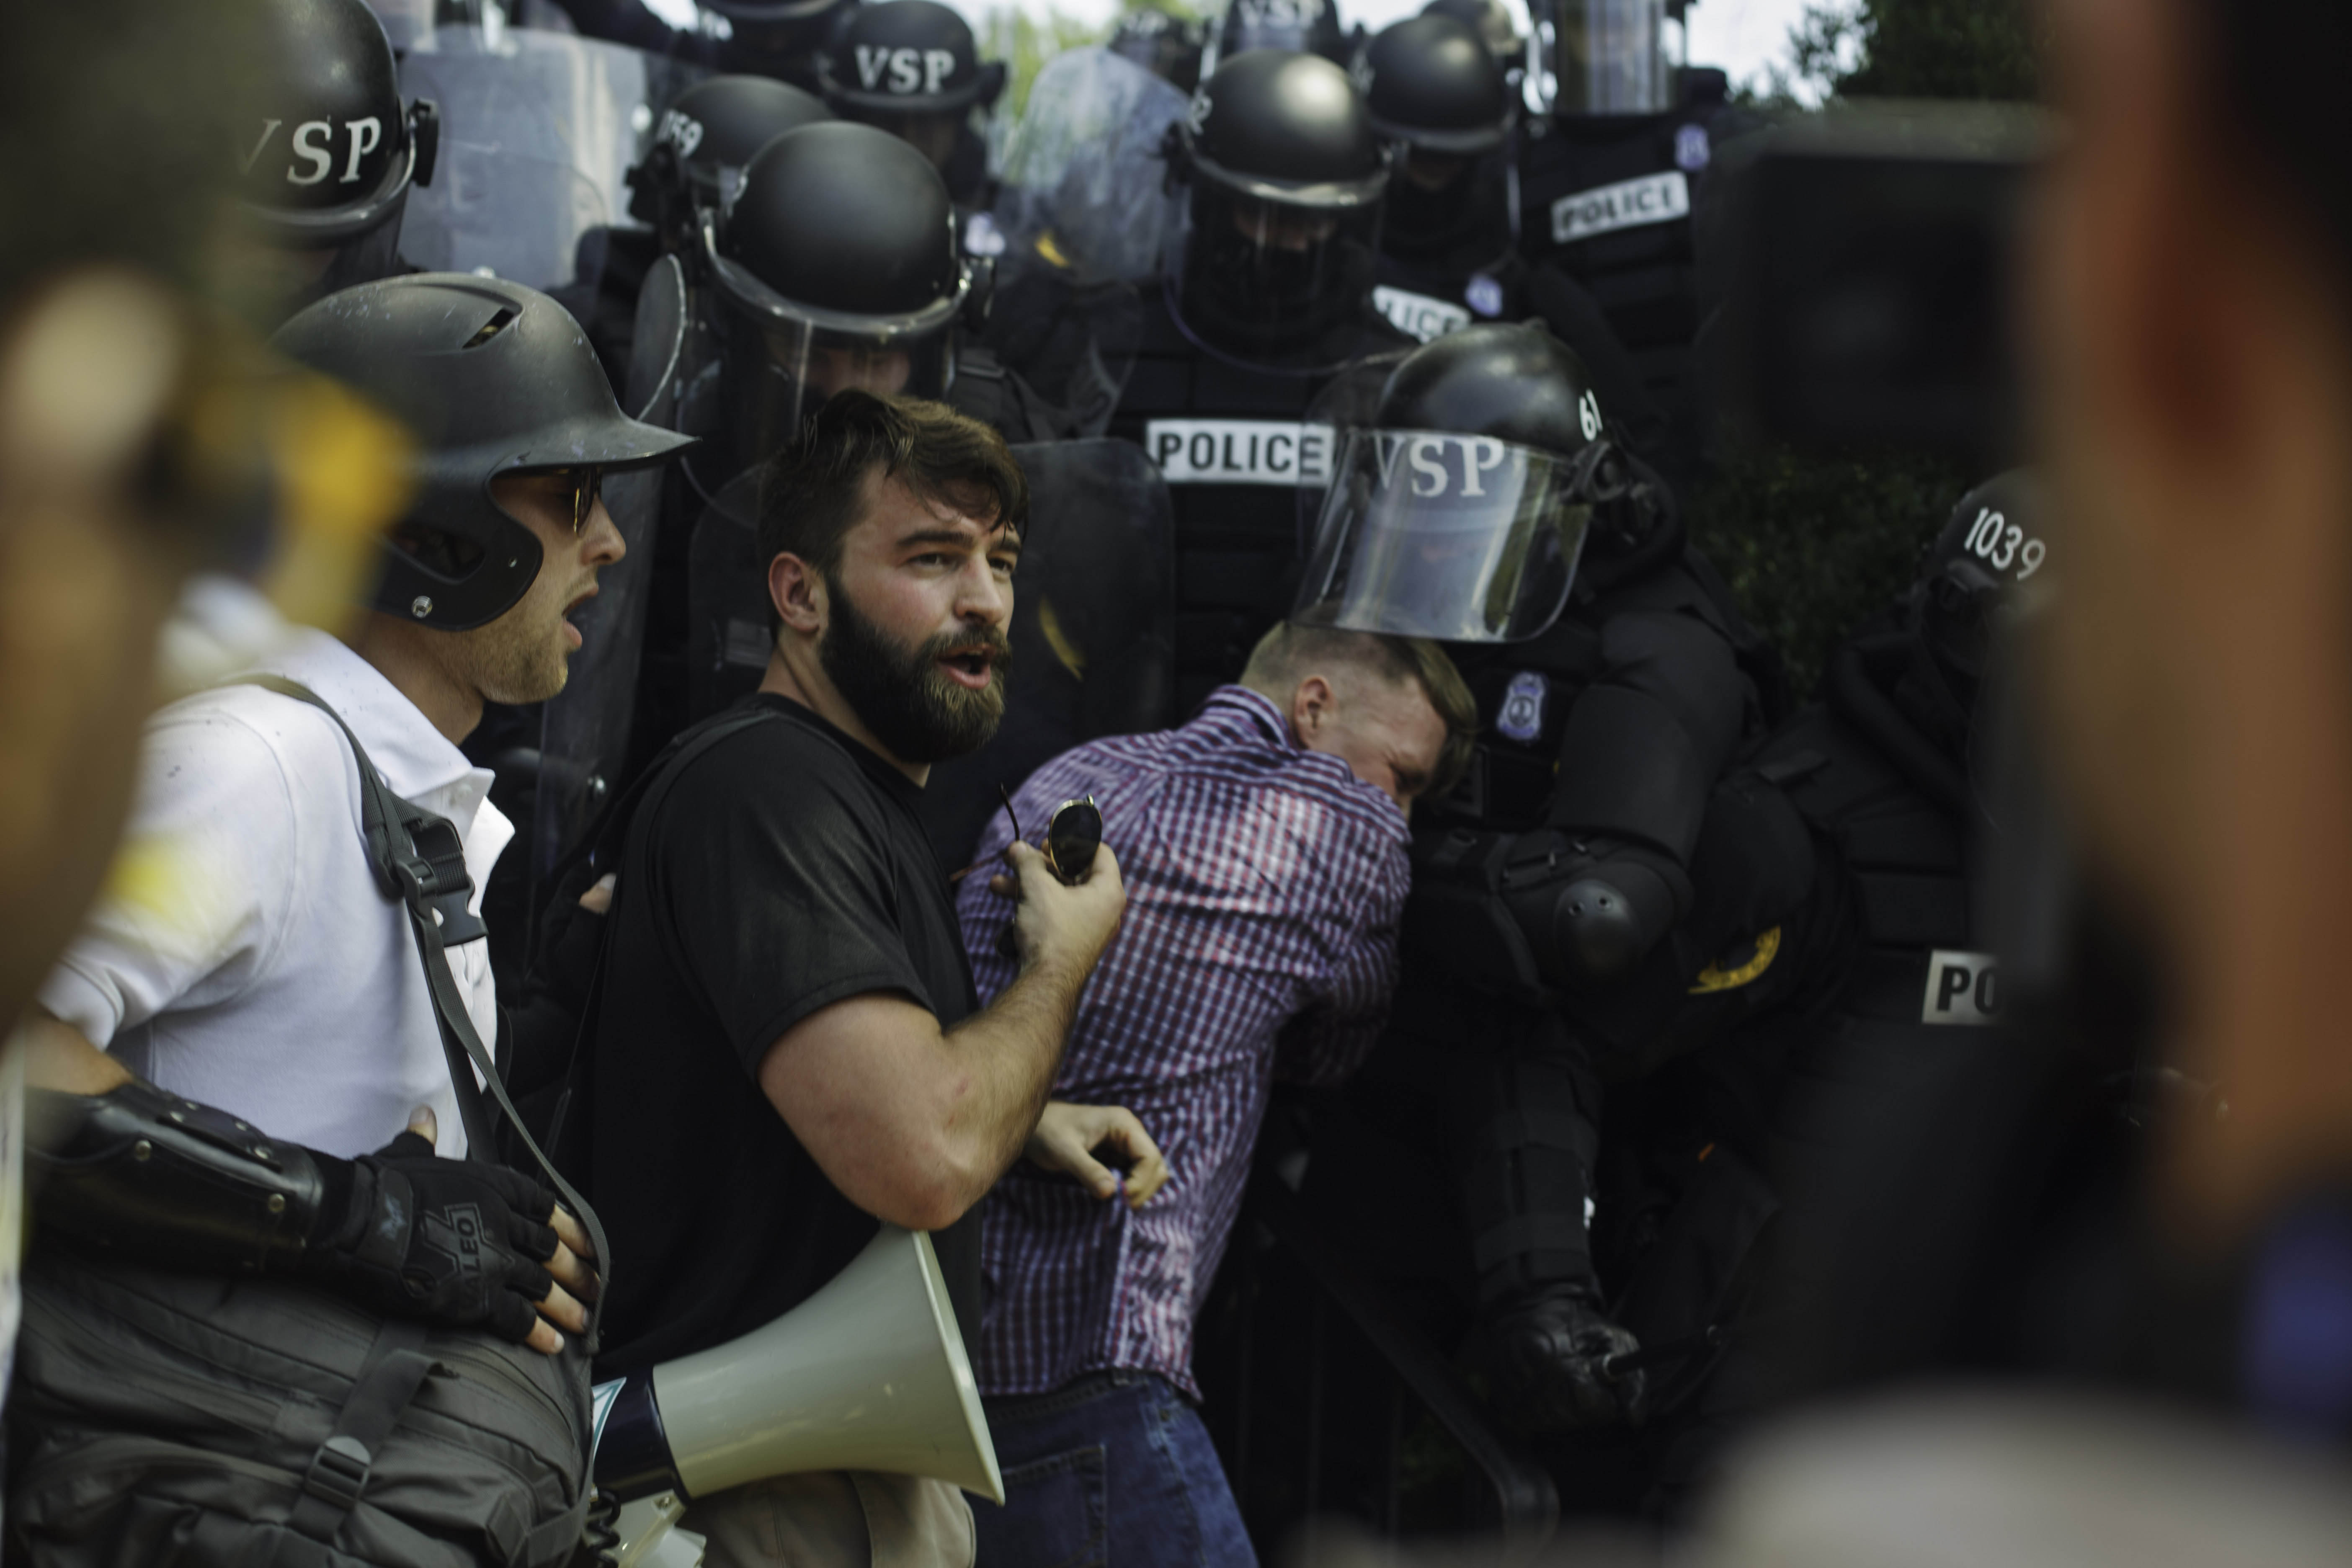 Alt right activist Tim Gionet, also known as Baked Alaska, says that he suffered from permanent eye damage after being sprayed with bear mace during the brawls that occurred during the UniteThe Right rally. August 12, 2017 Charlottesville, VA. (Shay Horse/GroundTruth)